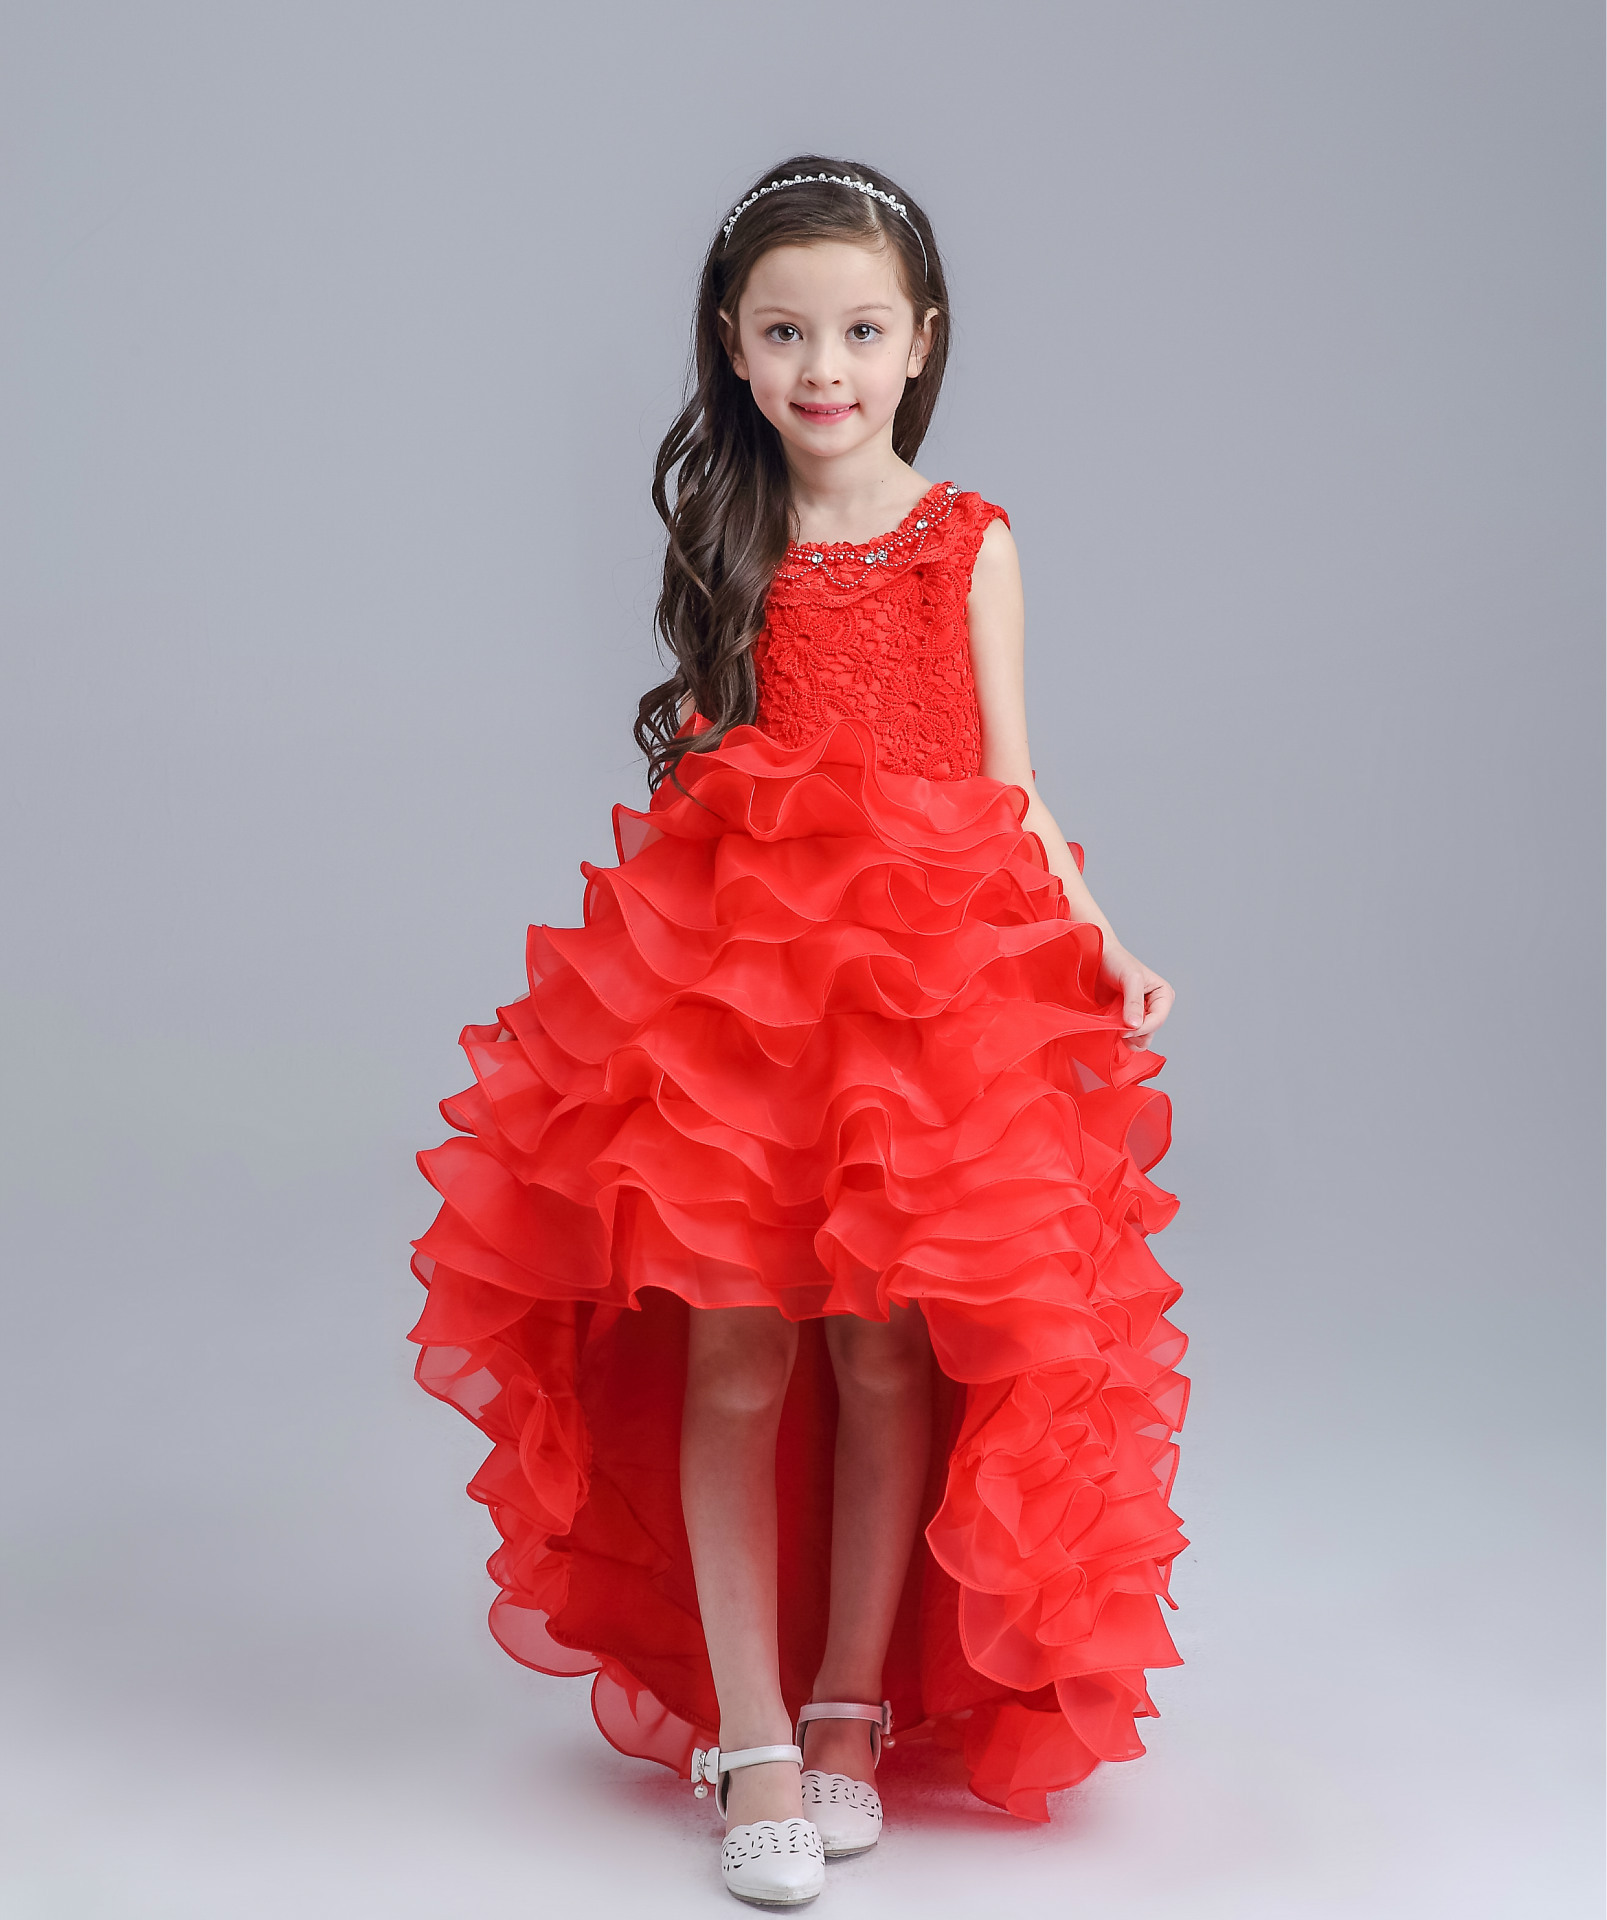 Online shop new red tailed girls dress princess wedding party online shop new red tailed girls dress princess wedding party flower children bridesmaid vestidos ropa infantil girl 2016 kids clothes 4 15y aliexpress ombrellifo Gallery